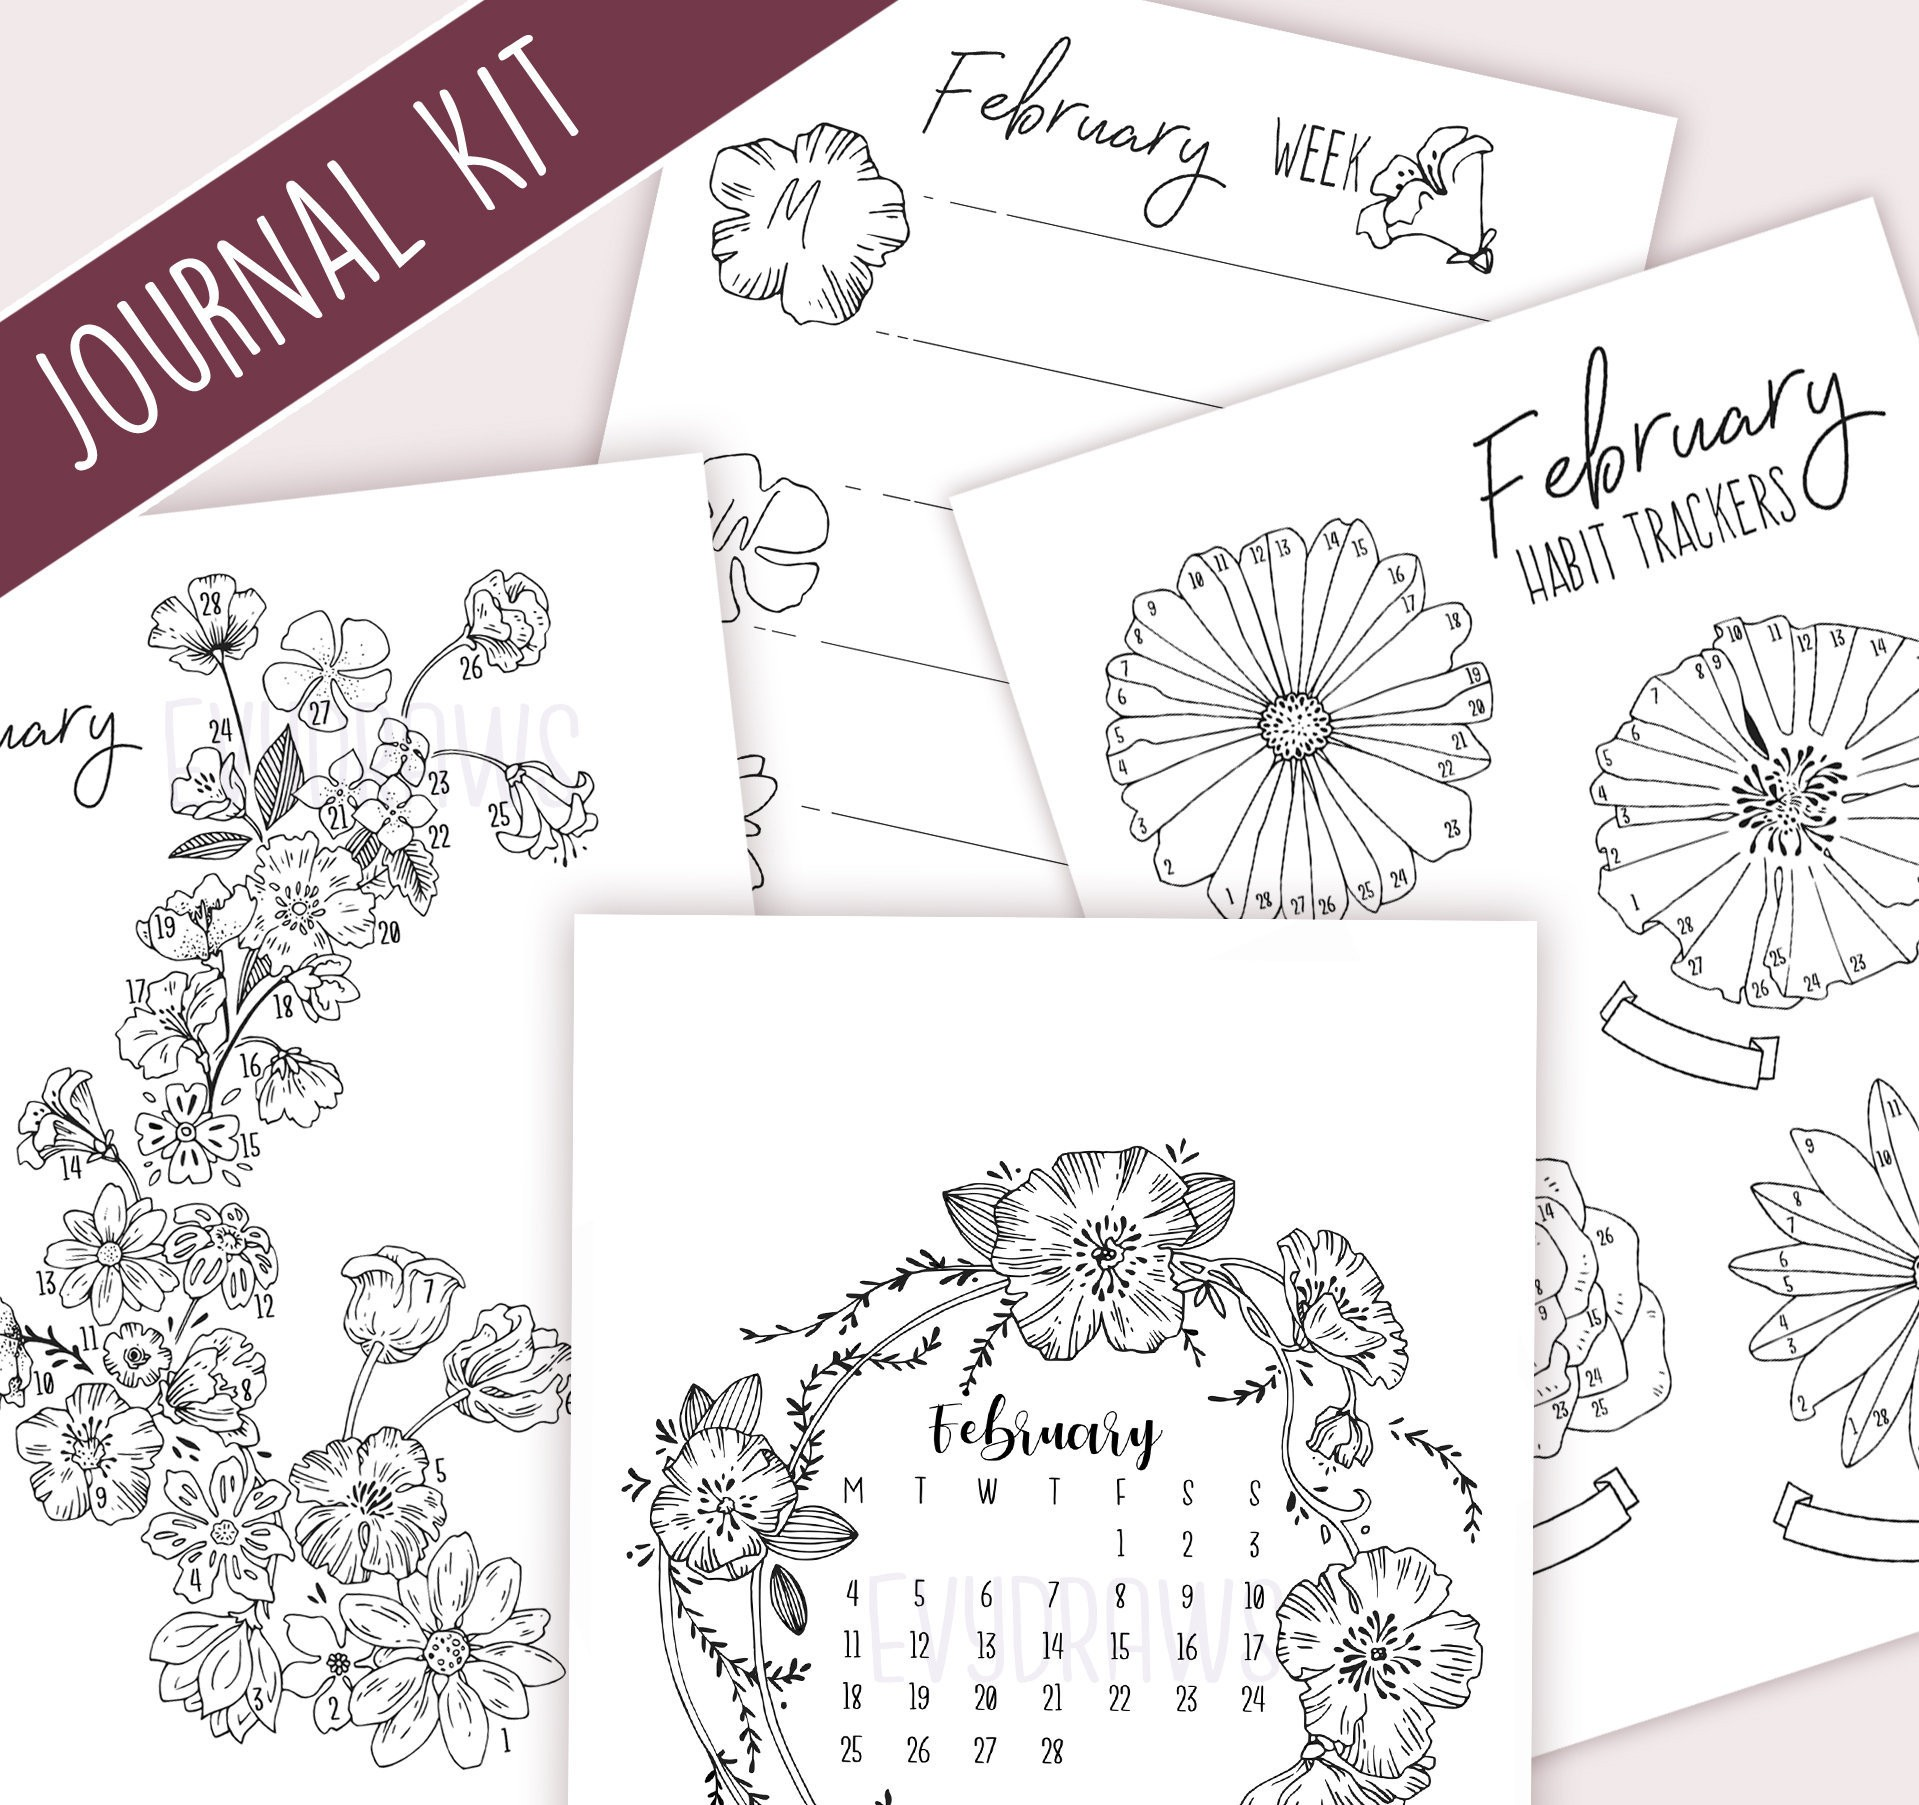 2019 March Calendar Sri Lanka Más Recientes February 2019 Bullet Journal Kit Printable Monthly Bundle Of 2019 March Calendar Sri Lanka Mejores Y Más Novedosos A Technical Perspective Understanding the Concept Of the Multiple